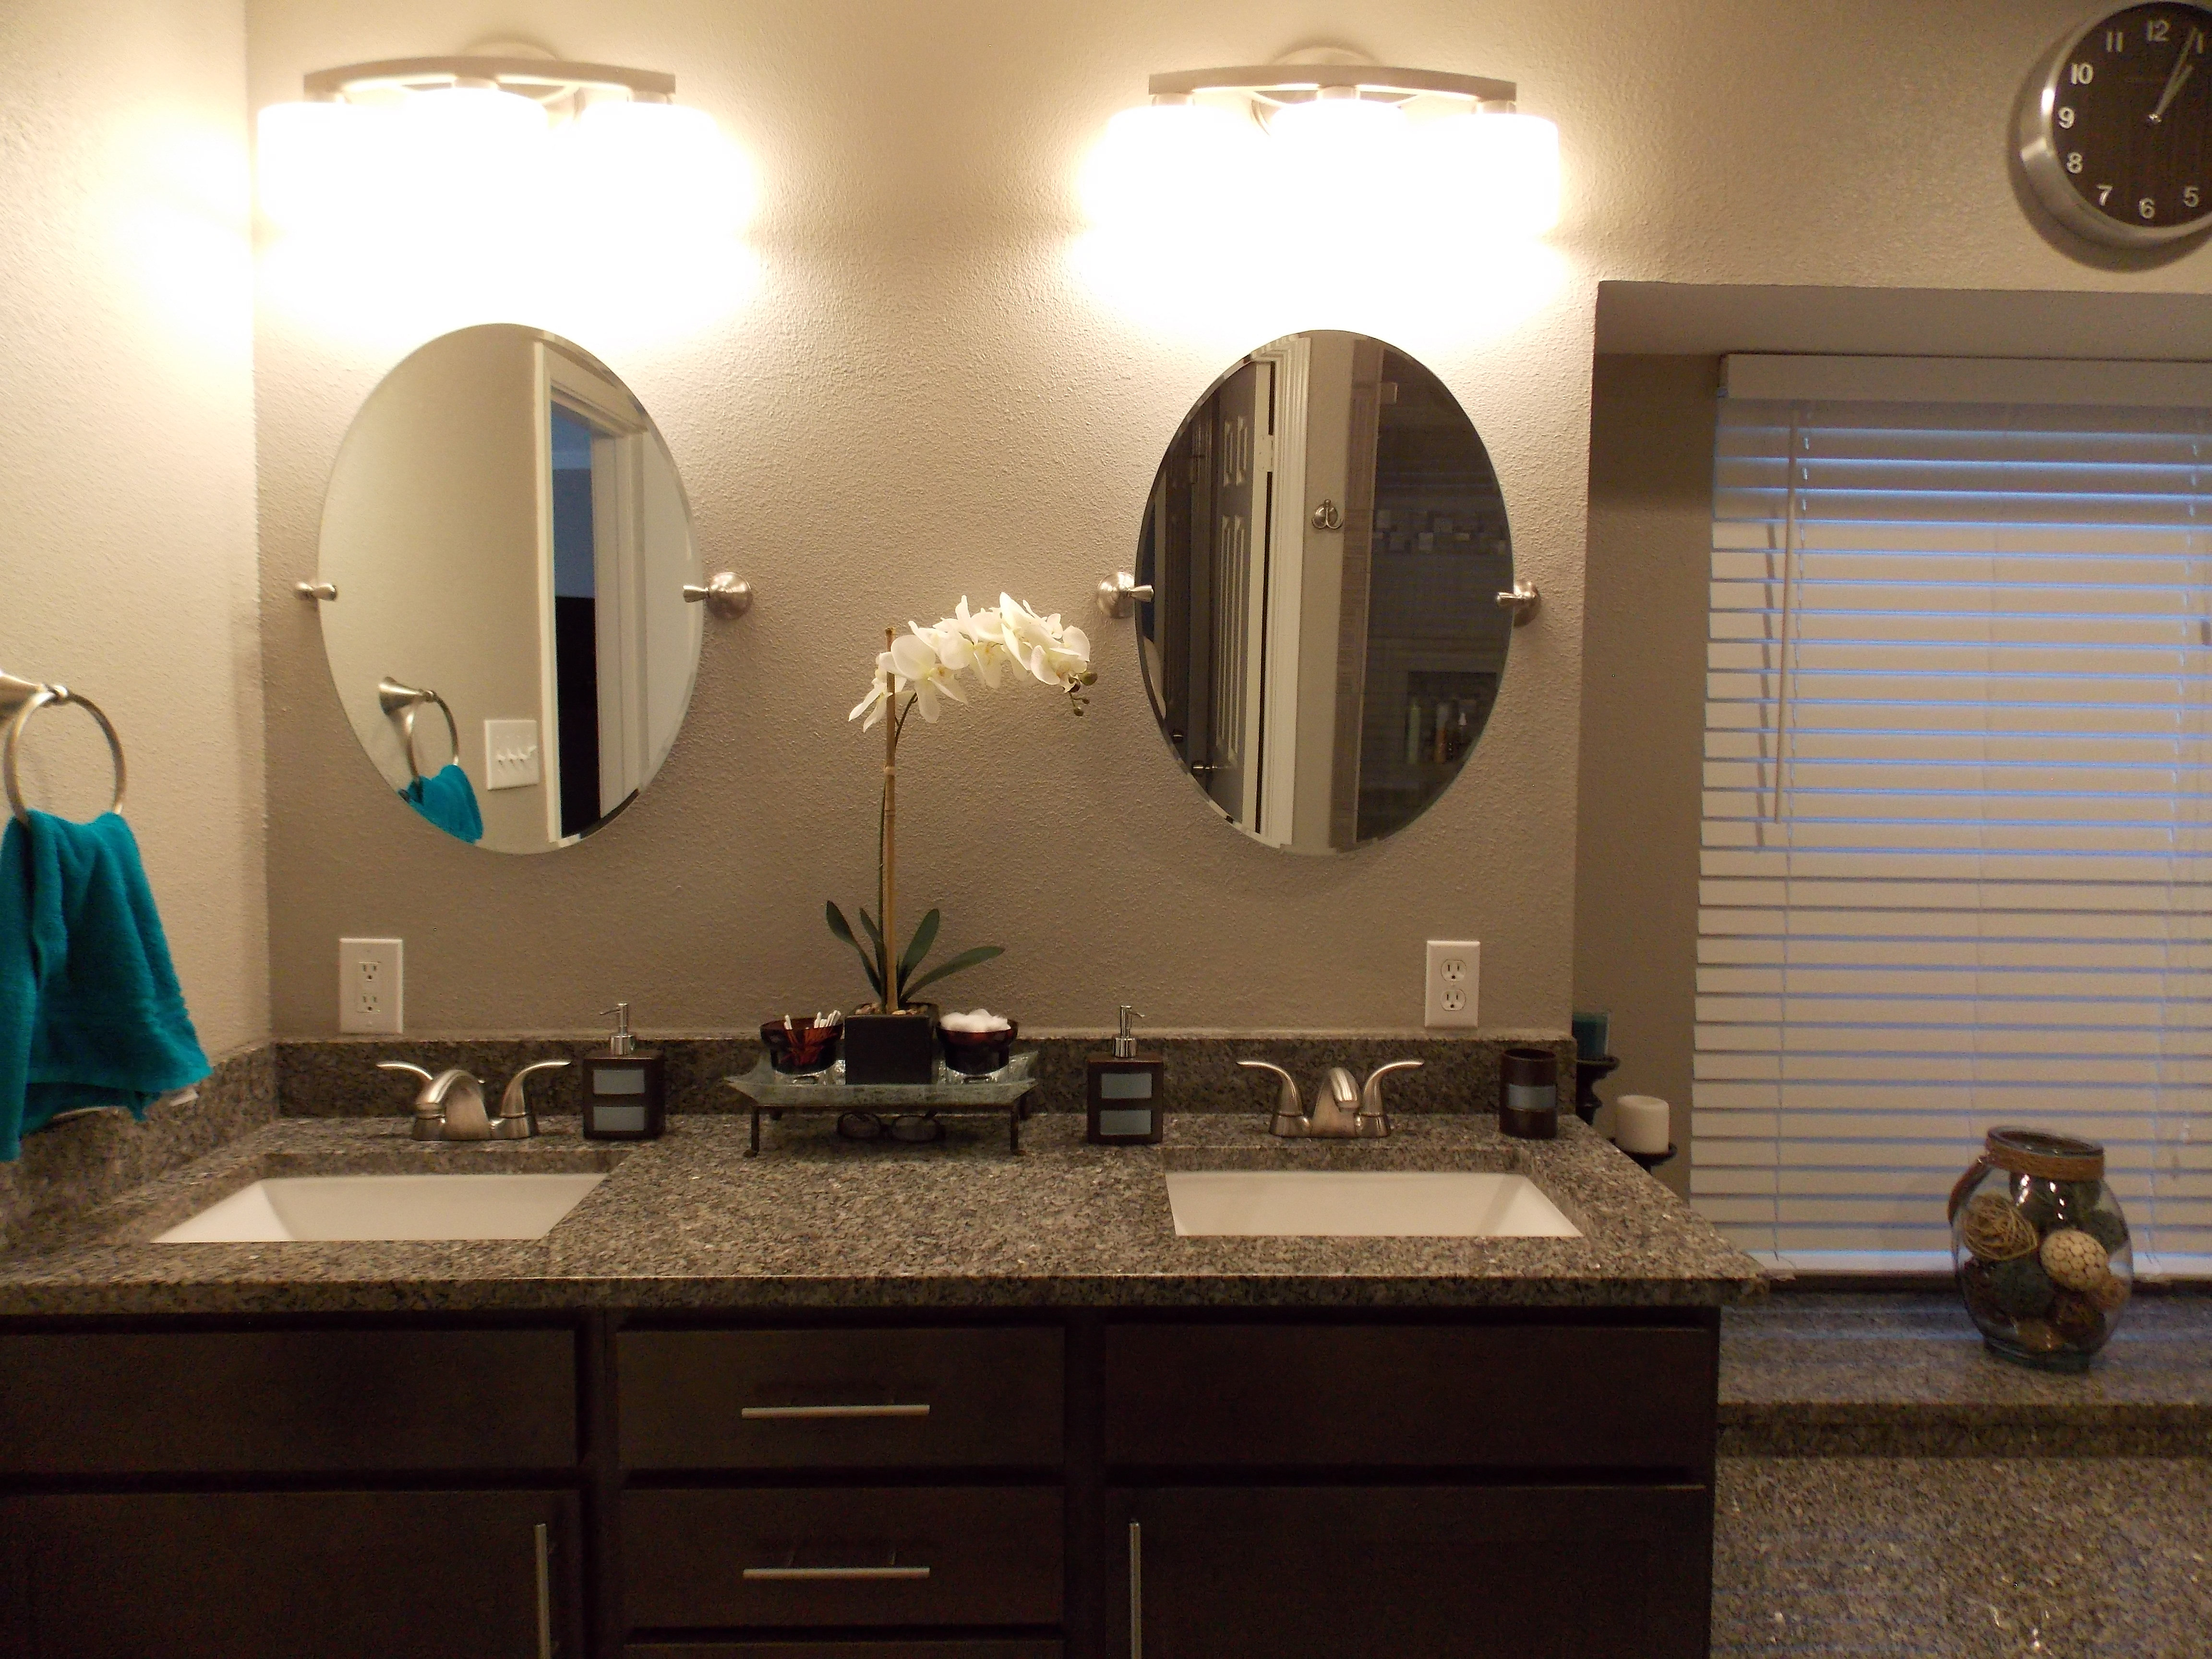 San antonio based general contractor specializing in home for Bathroom remodel plumbing